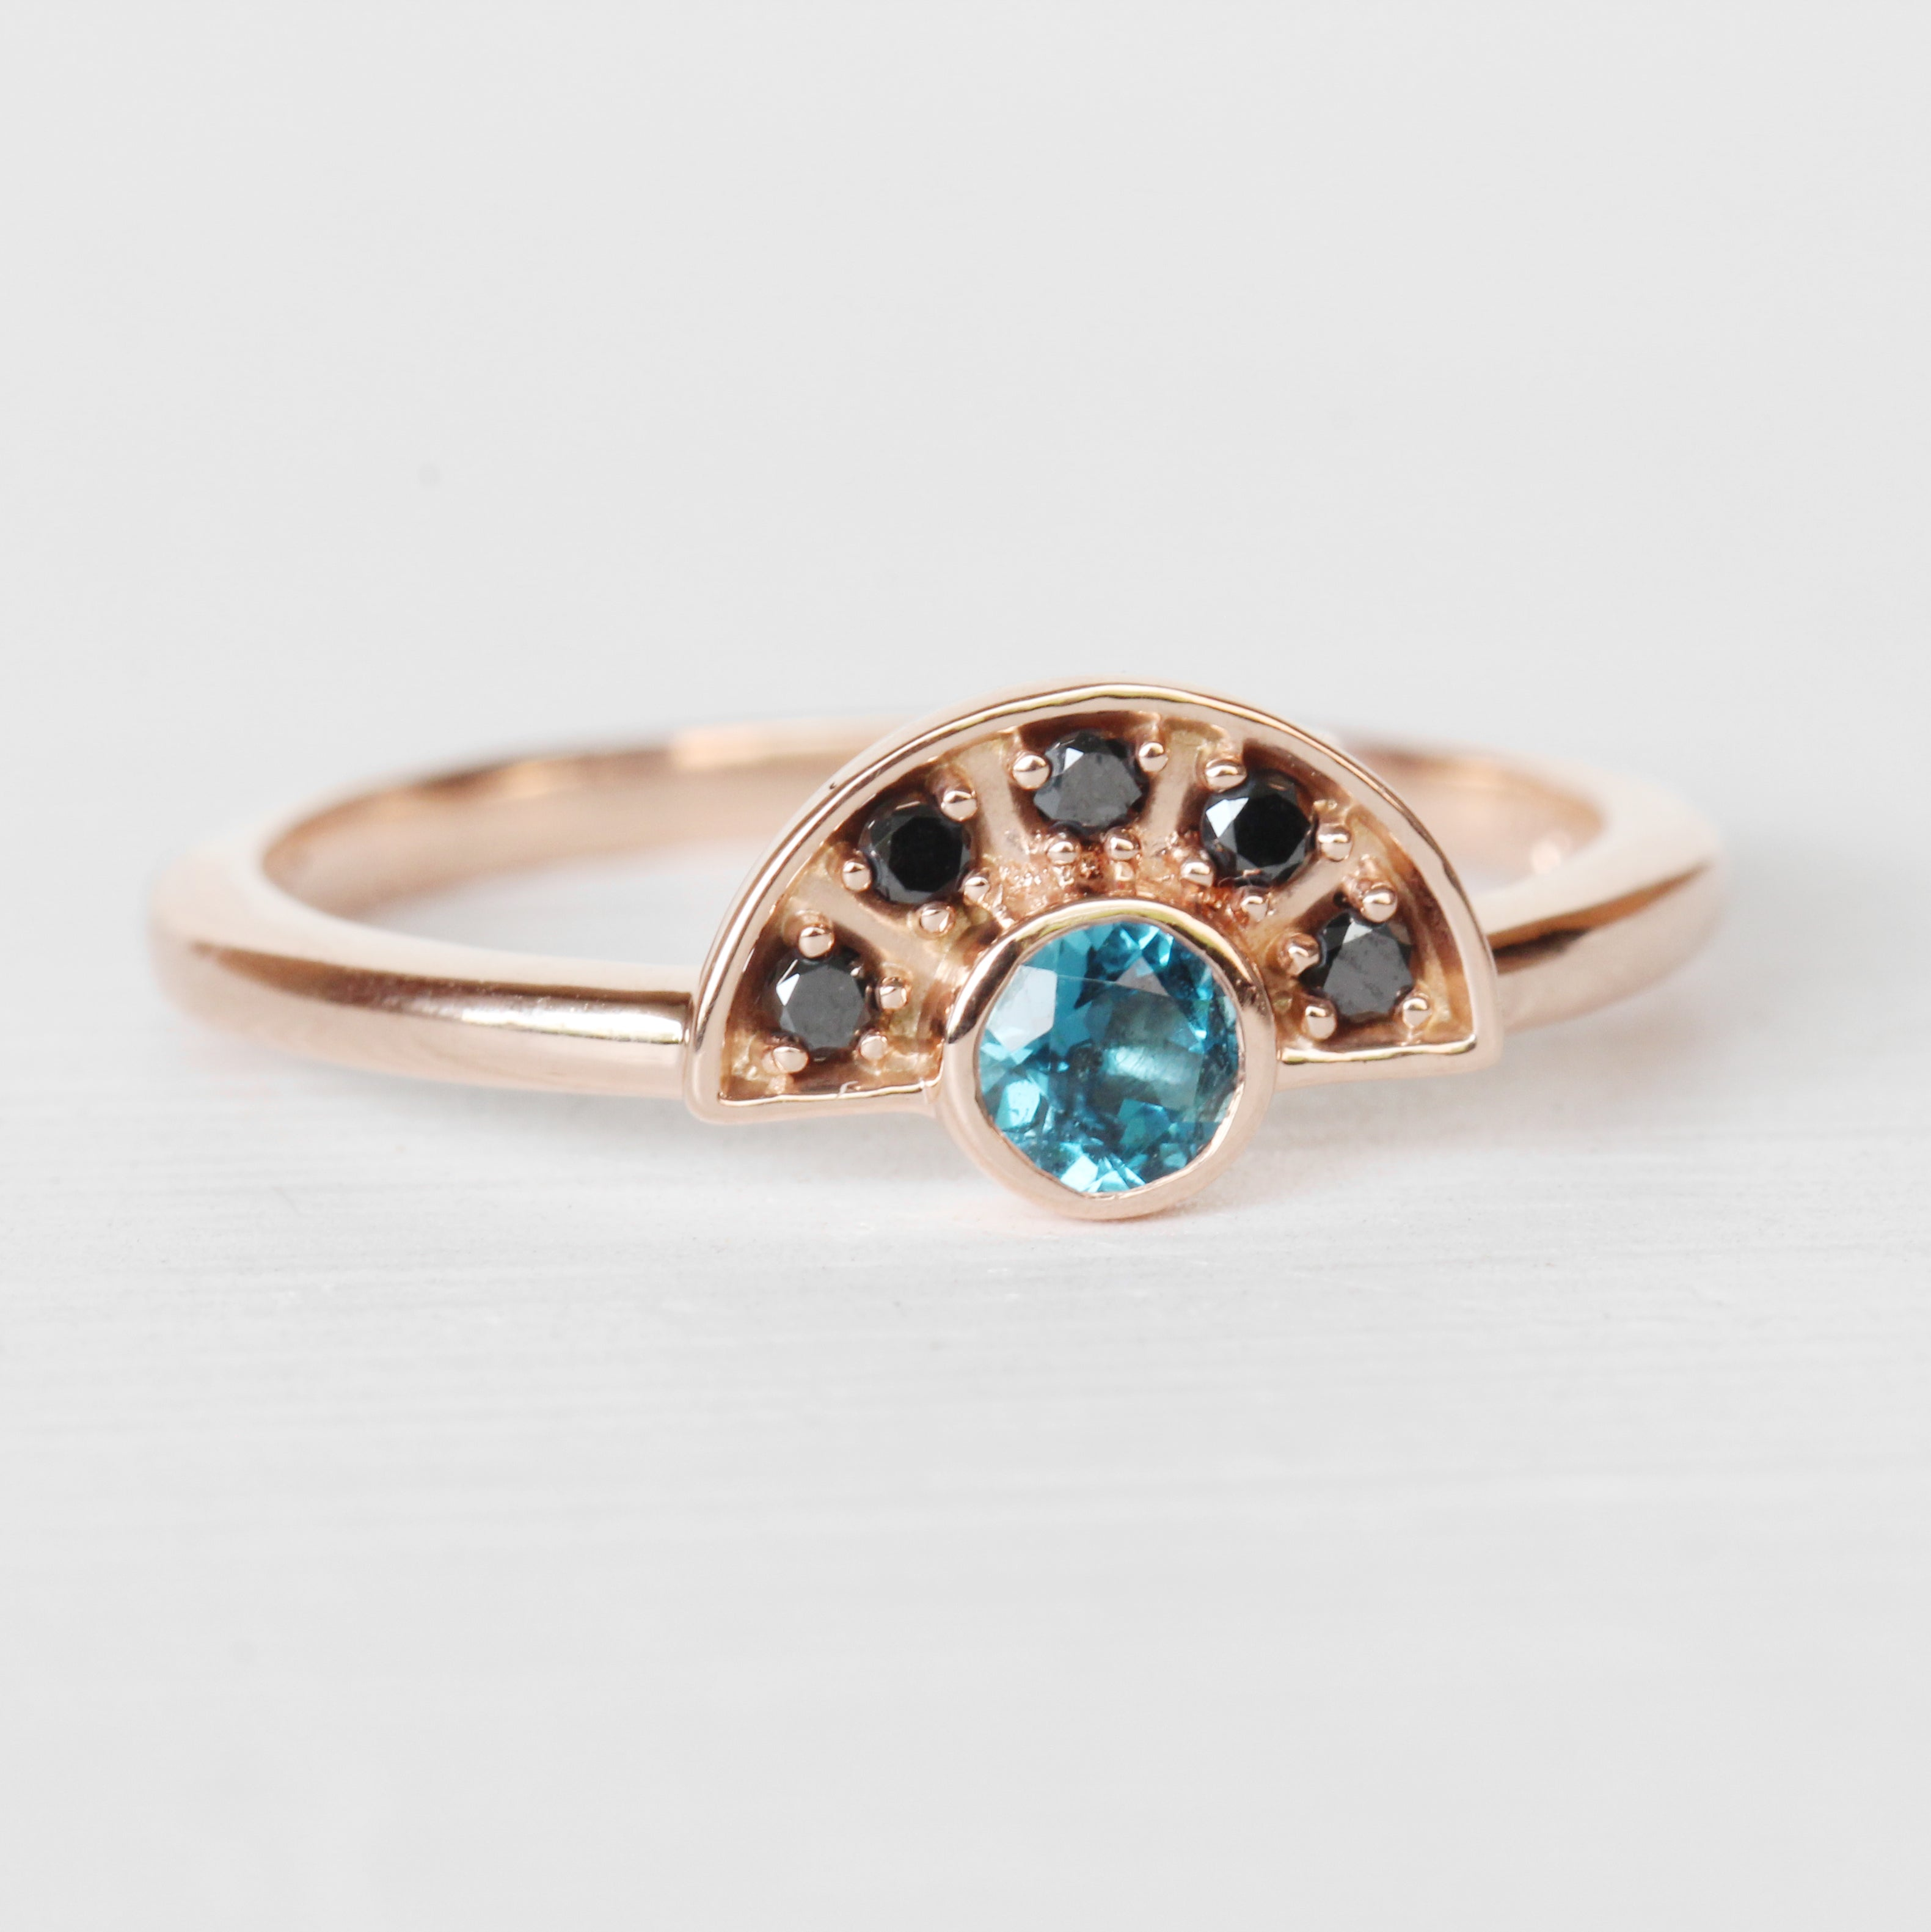 Dottie London Blue Topaz + Black Diamond Stackable or Wedding Ring - Your choice of metal - Custom - Midwinter Co. Alternative Bridal Rings and Modern Fine Jewelry